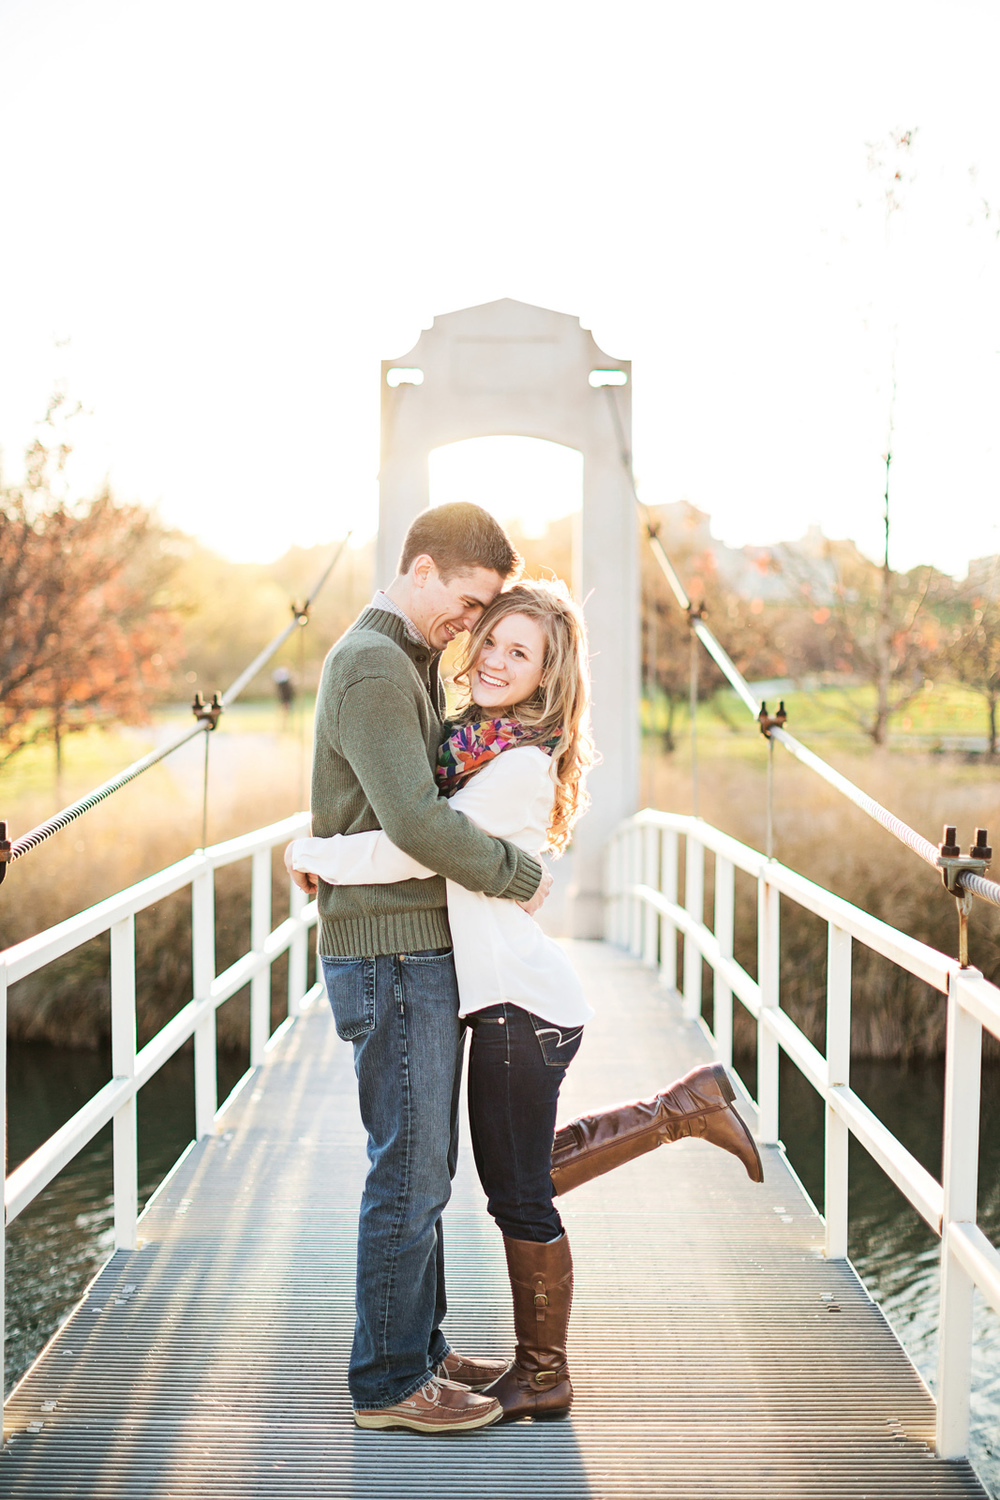 Oldani Photography-St Louis-Forest Park-Grand Basin-Engagement Session-engagement photos_20141108_171302-2.jpg